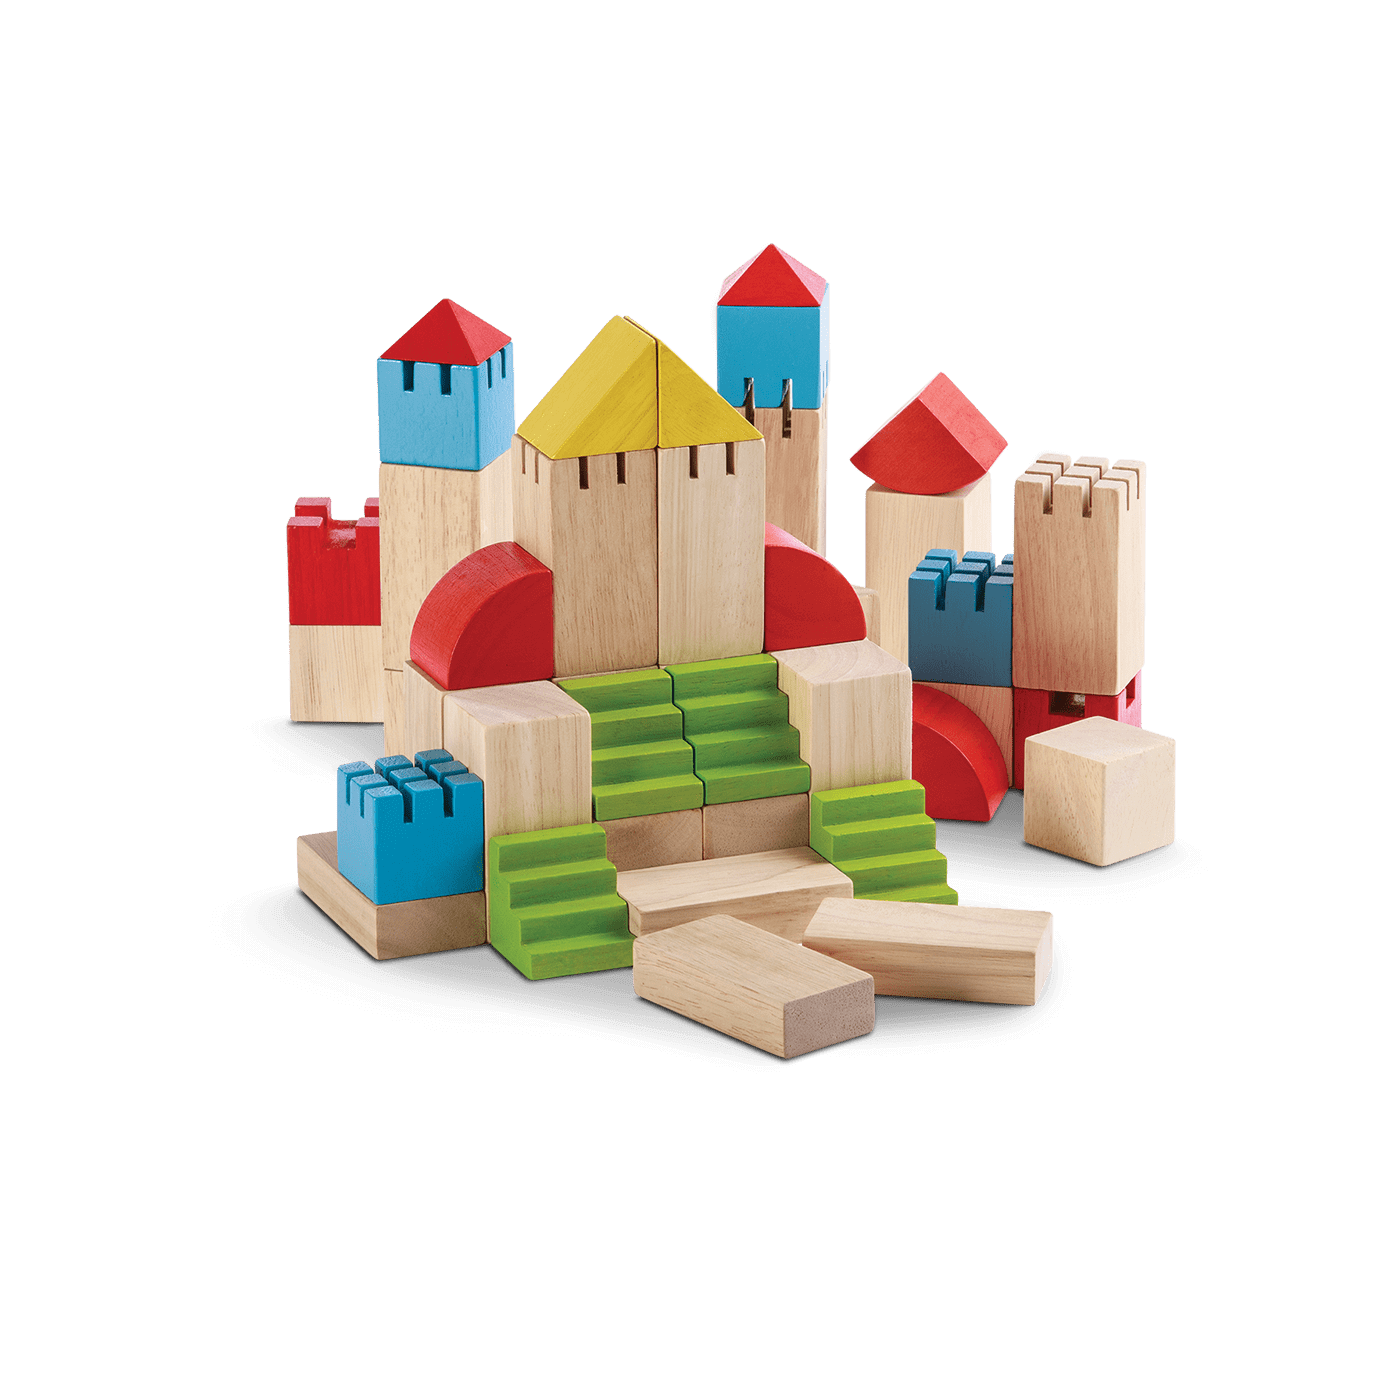 5527_PlanToys_CREATIVE_BLOCKS_Blocks_and_Construction_Mathematical_Creative_Fine_Motor_Language_and_Communications_18m_Wooden_toys_Education_toys_Safety_Toys_Non-toxic_0.png